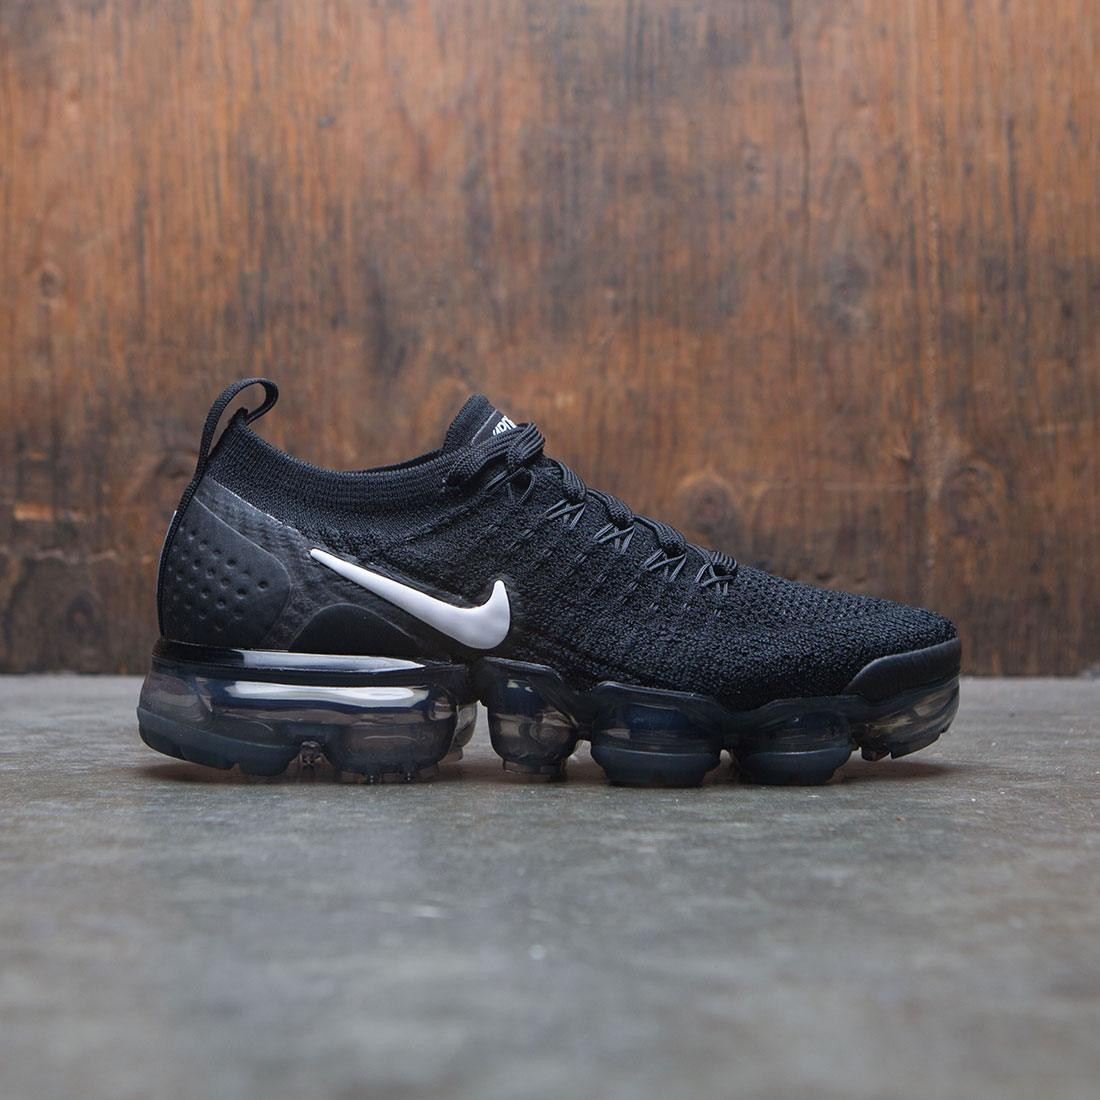 new concept e64f5 a1c17 Nike Women Air Vapormax Flyknit 2 (black / white-dark grey-metallic silver)